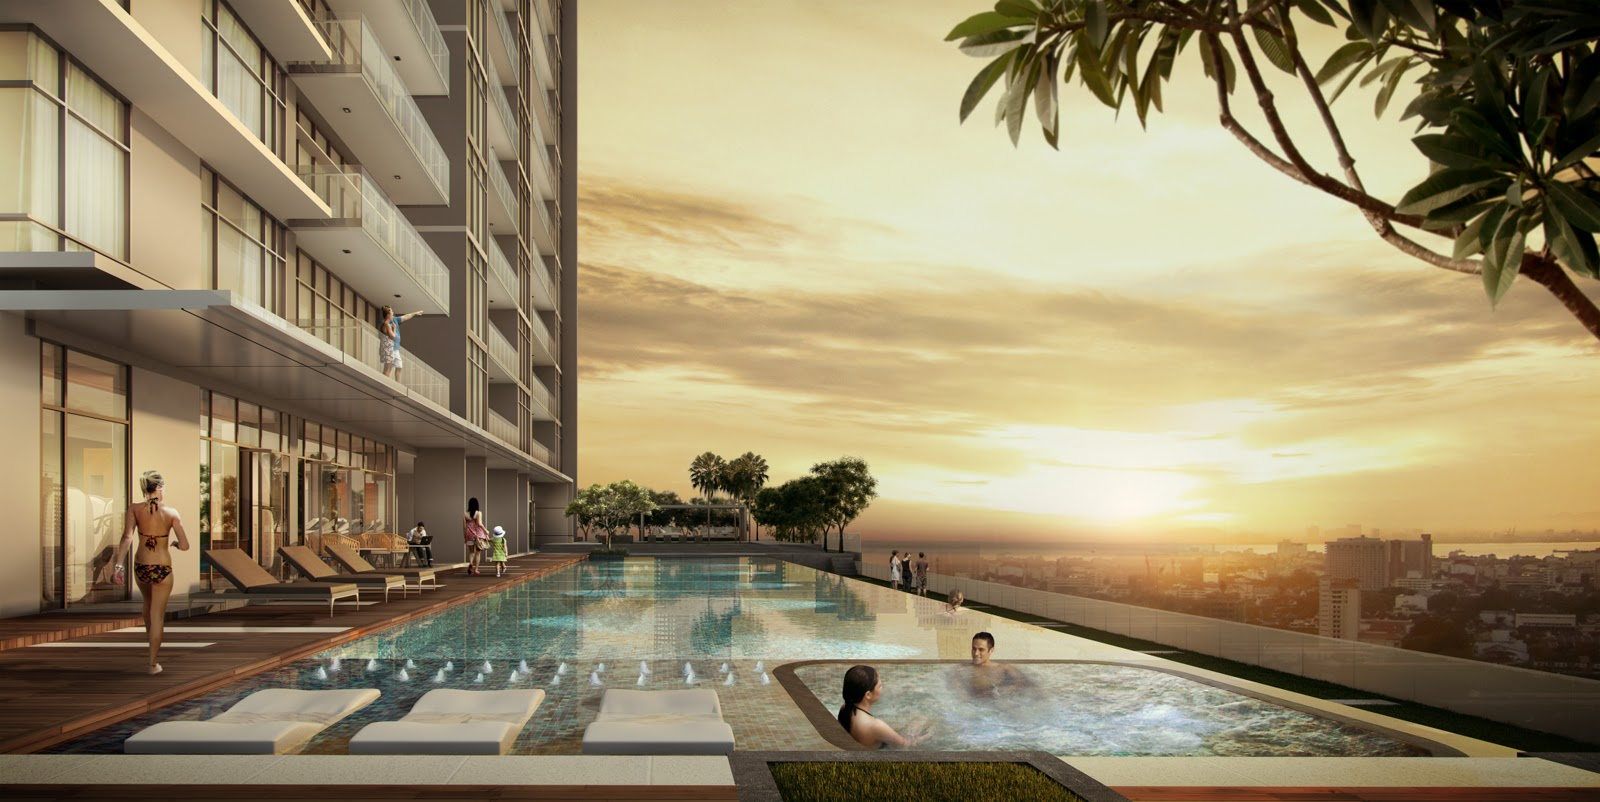 Property lover penang moulmein rise luxury suites for Garden city pool 2015